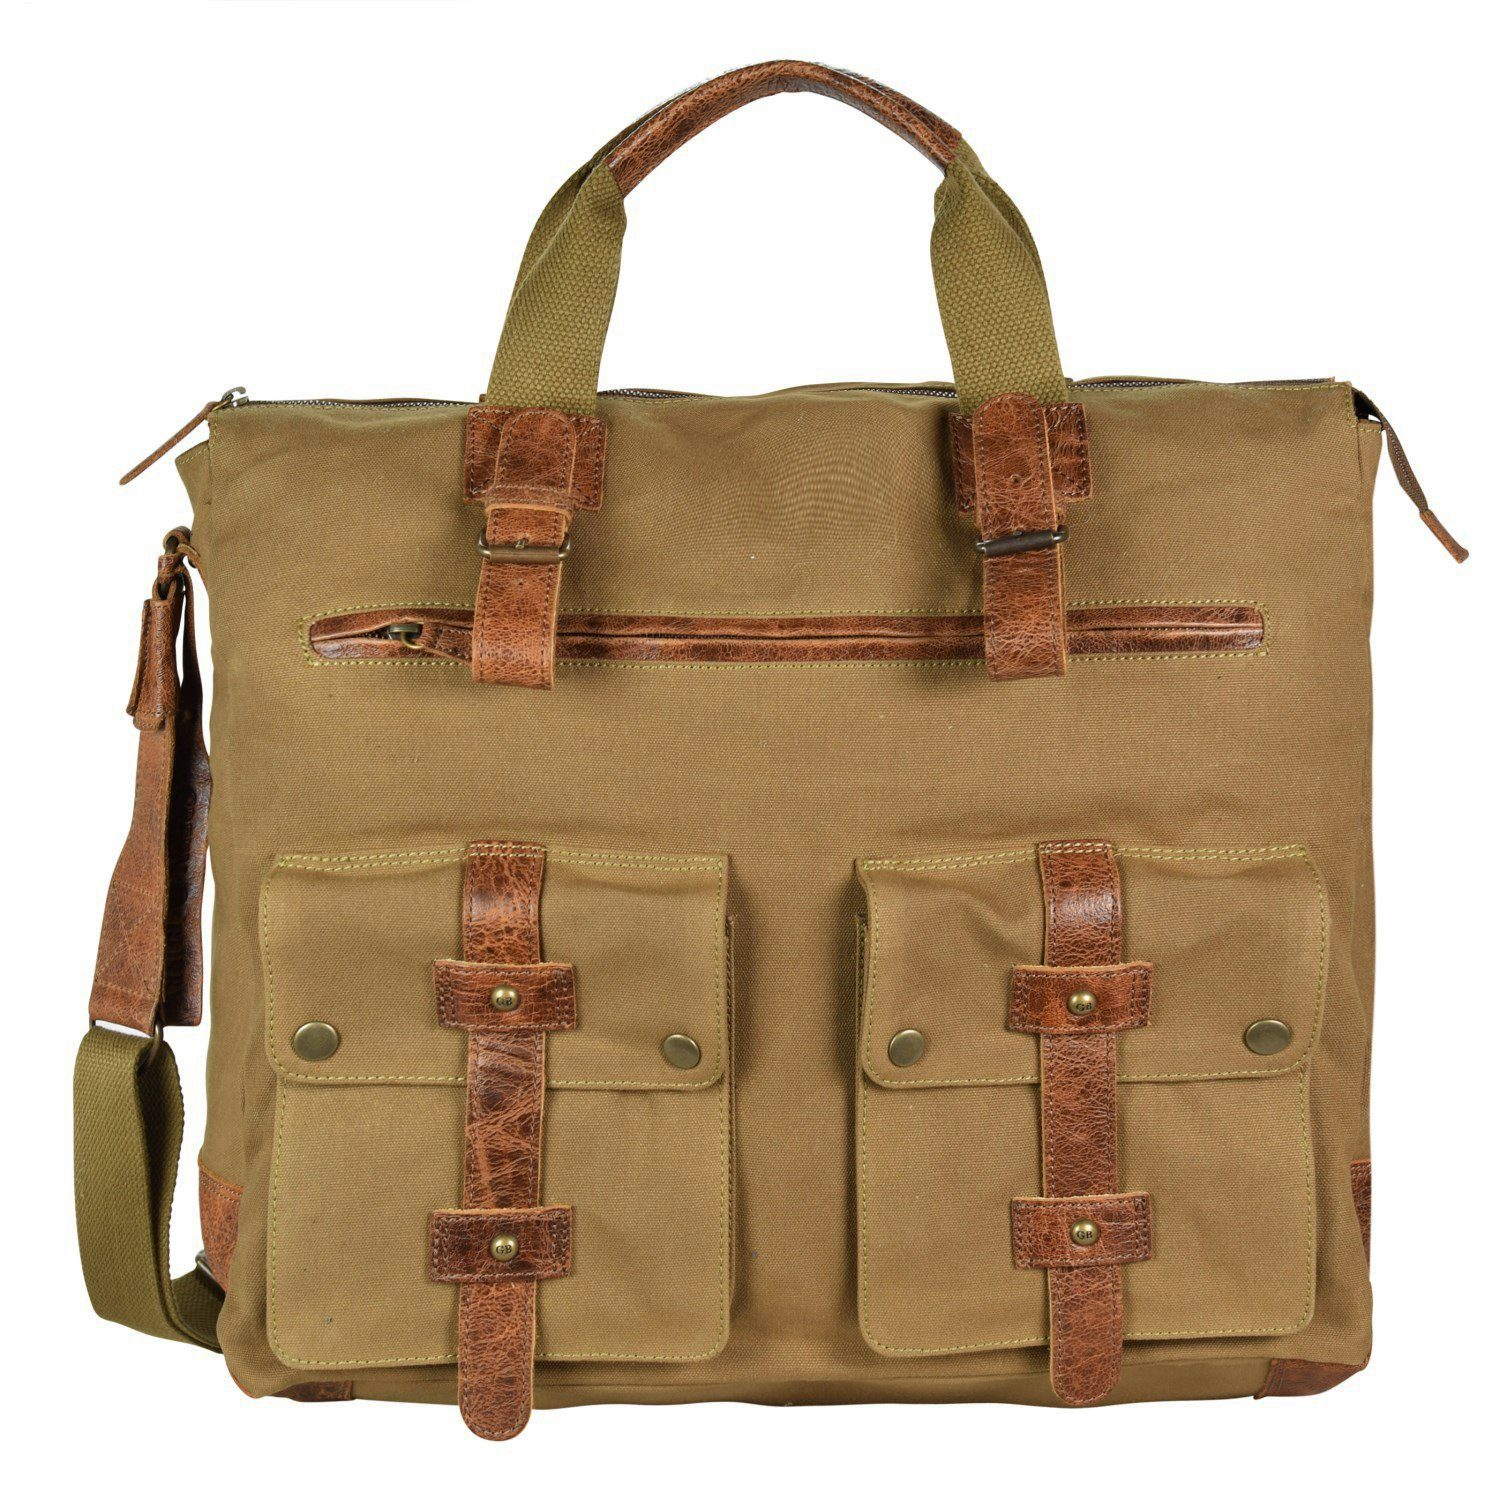 Greenburry White Spirit Fat Boy Handtasche 39 cm Tabletfach